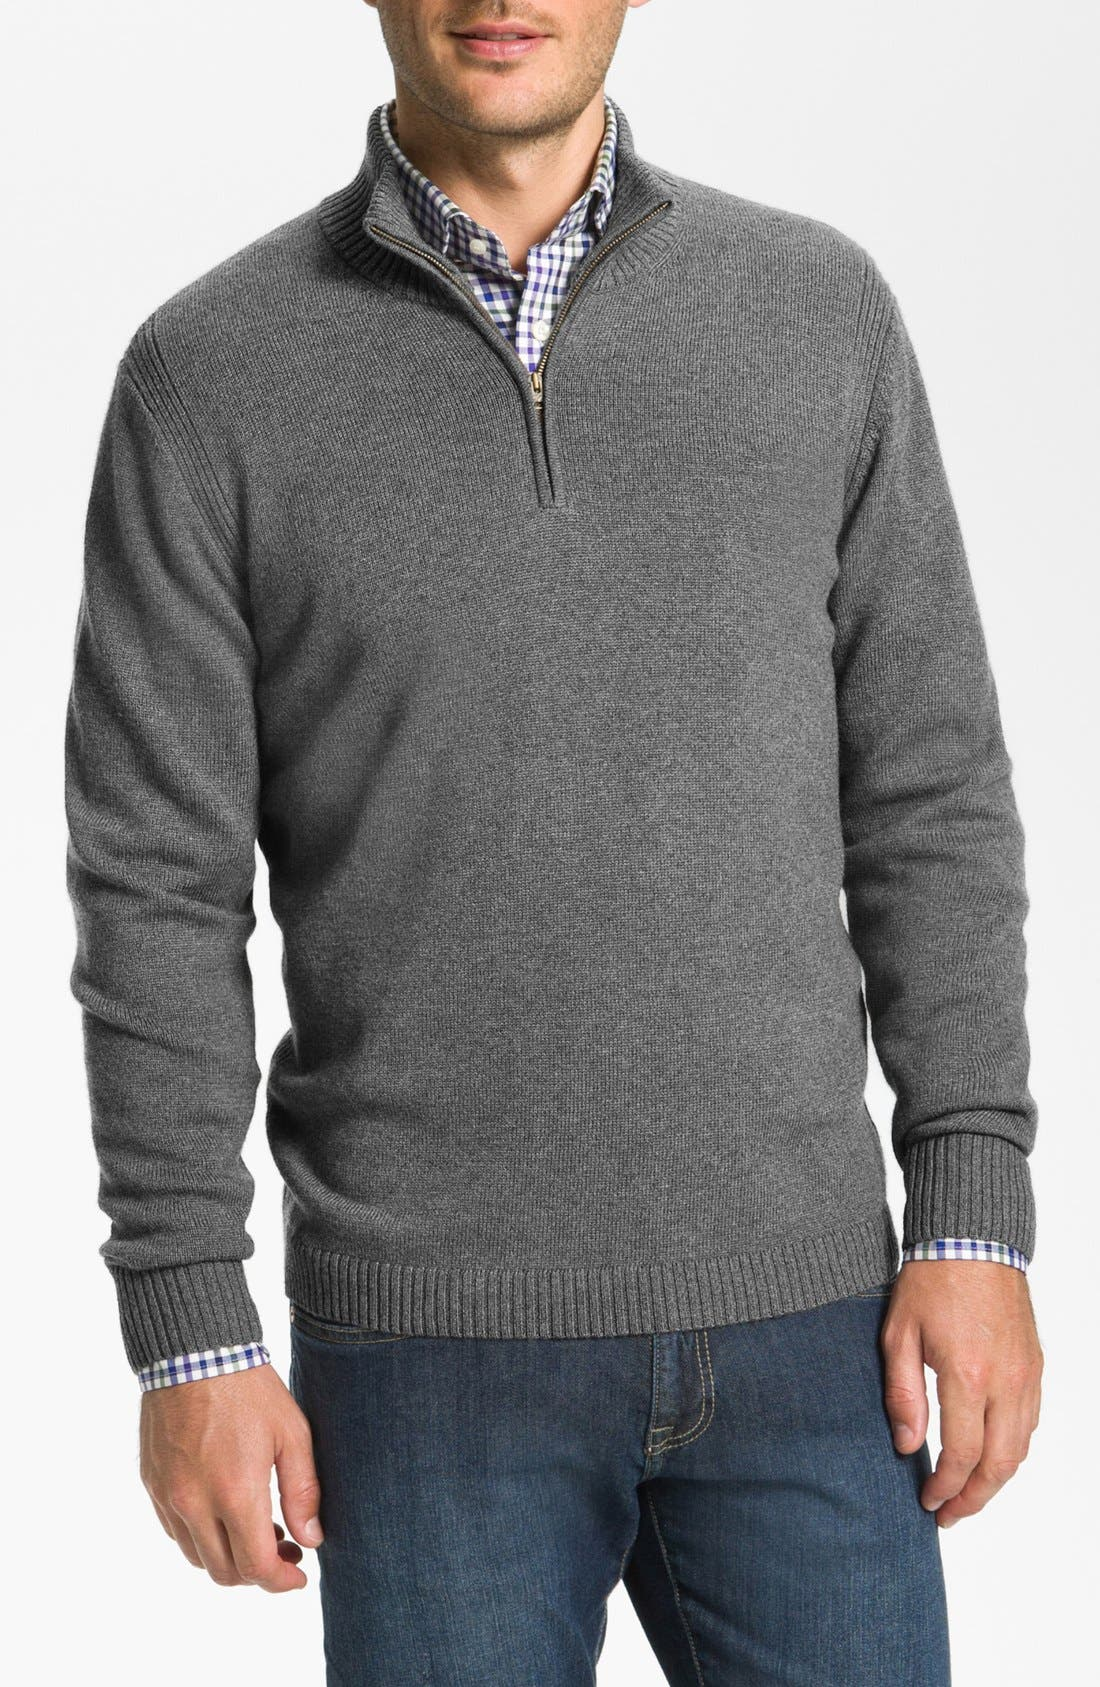 Main Image - Façonnable Half Zip Classique Fit Merino Wool Sweater